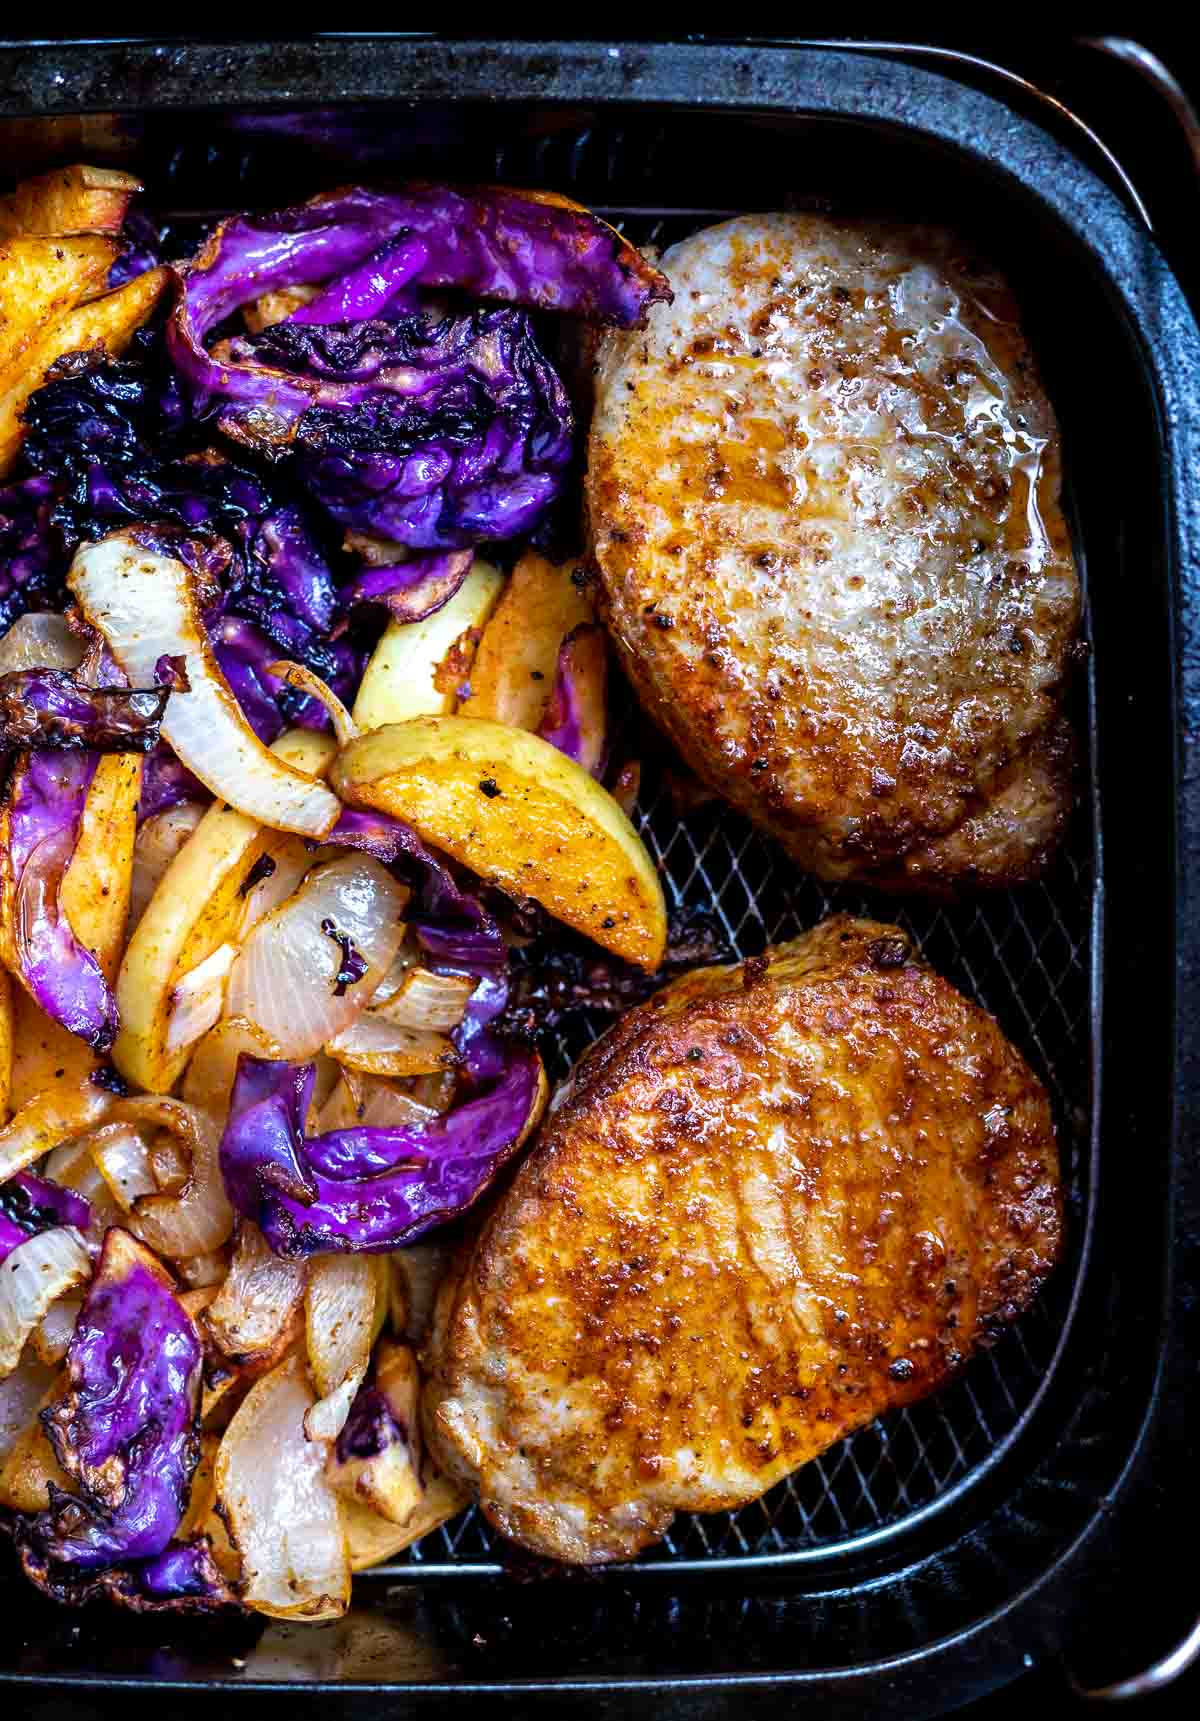 cooked pork chops, cabbage and apples in air fryer basket